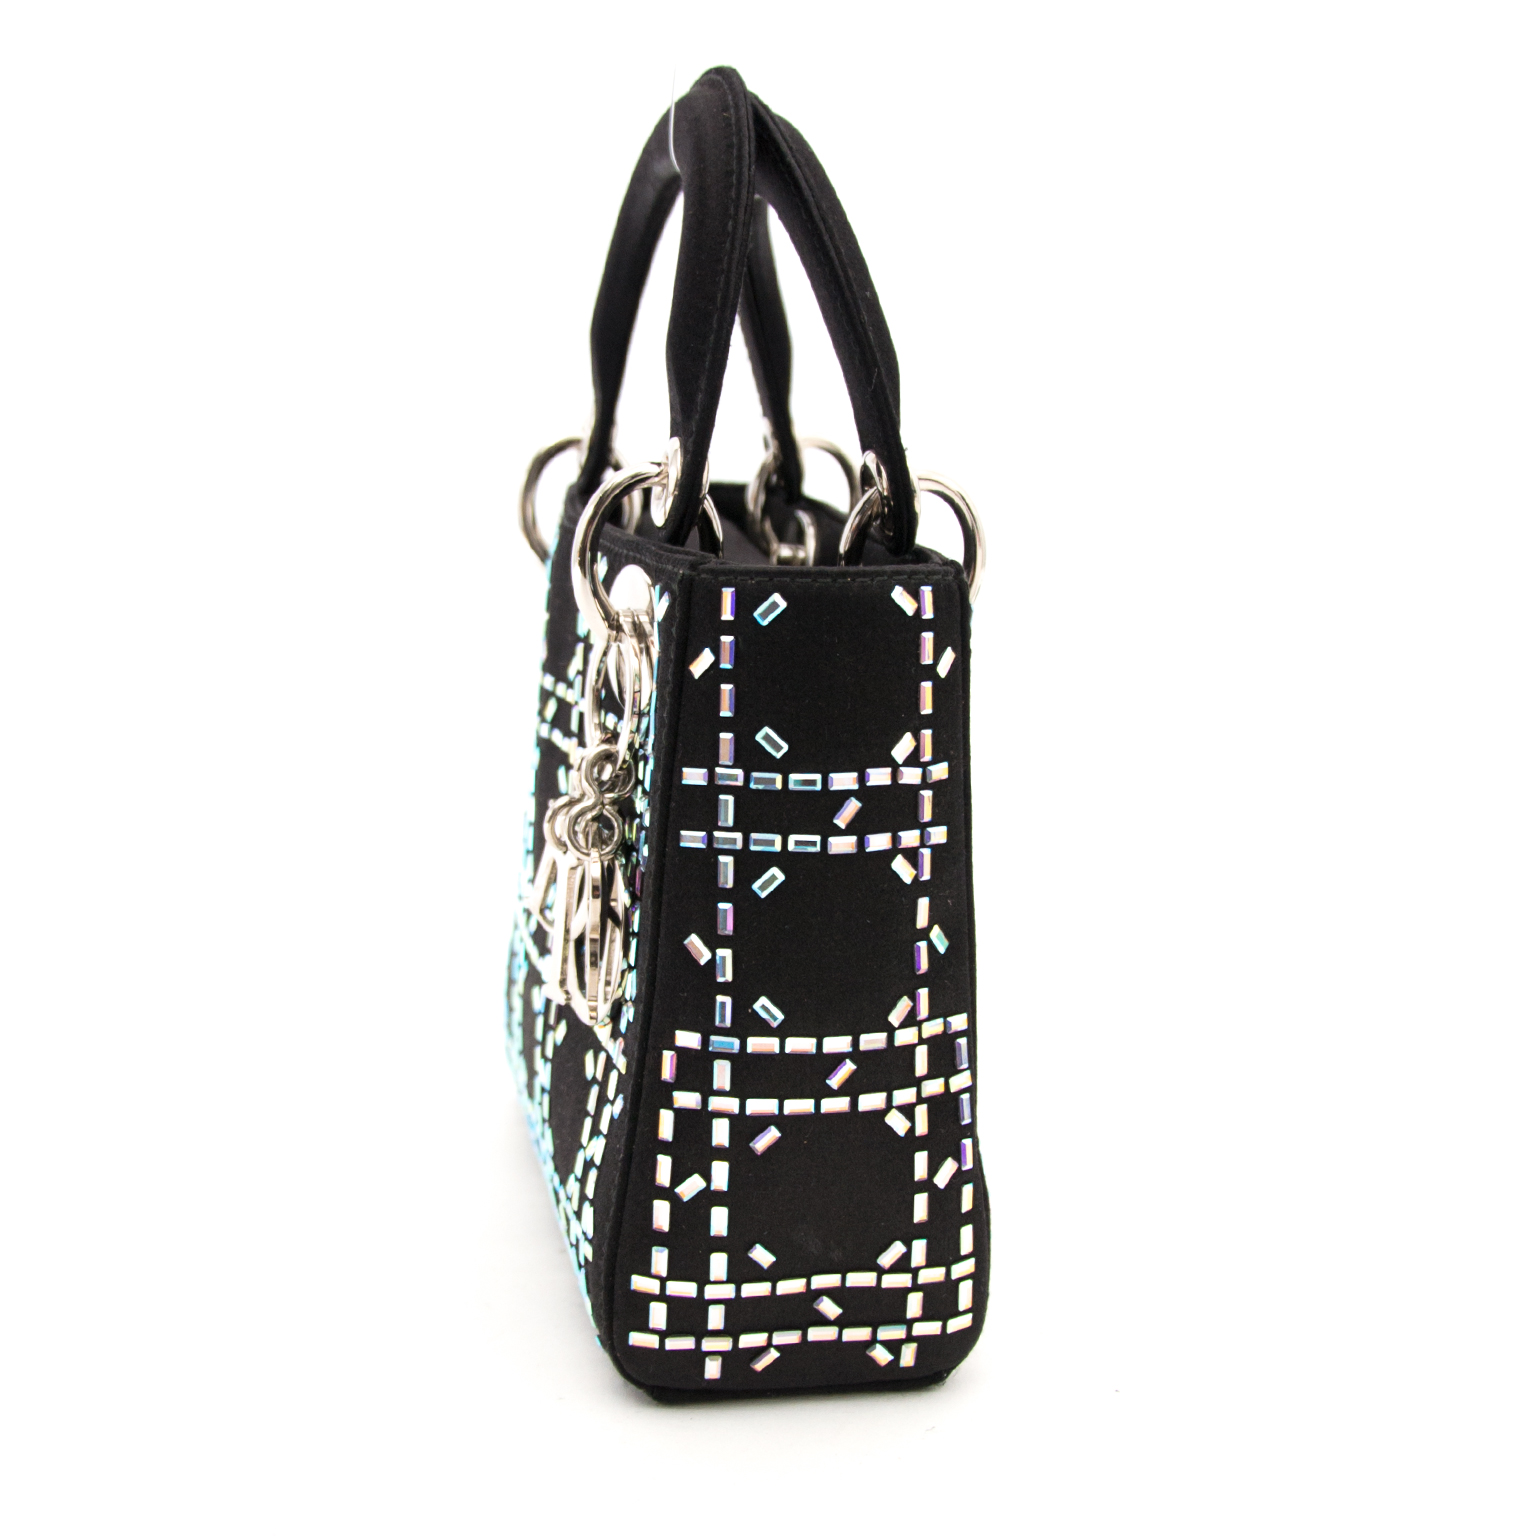 7cdd58f0ae77 ... Mini Embellished Lady Dior Bag for sale at the right price at Labellov .com